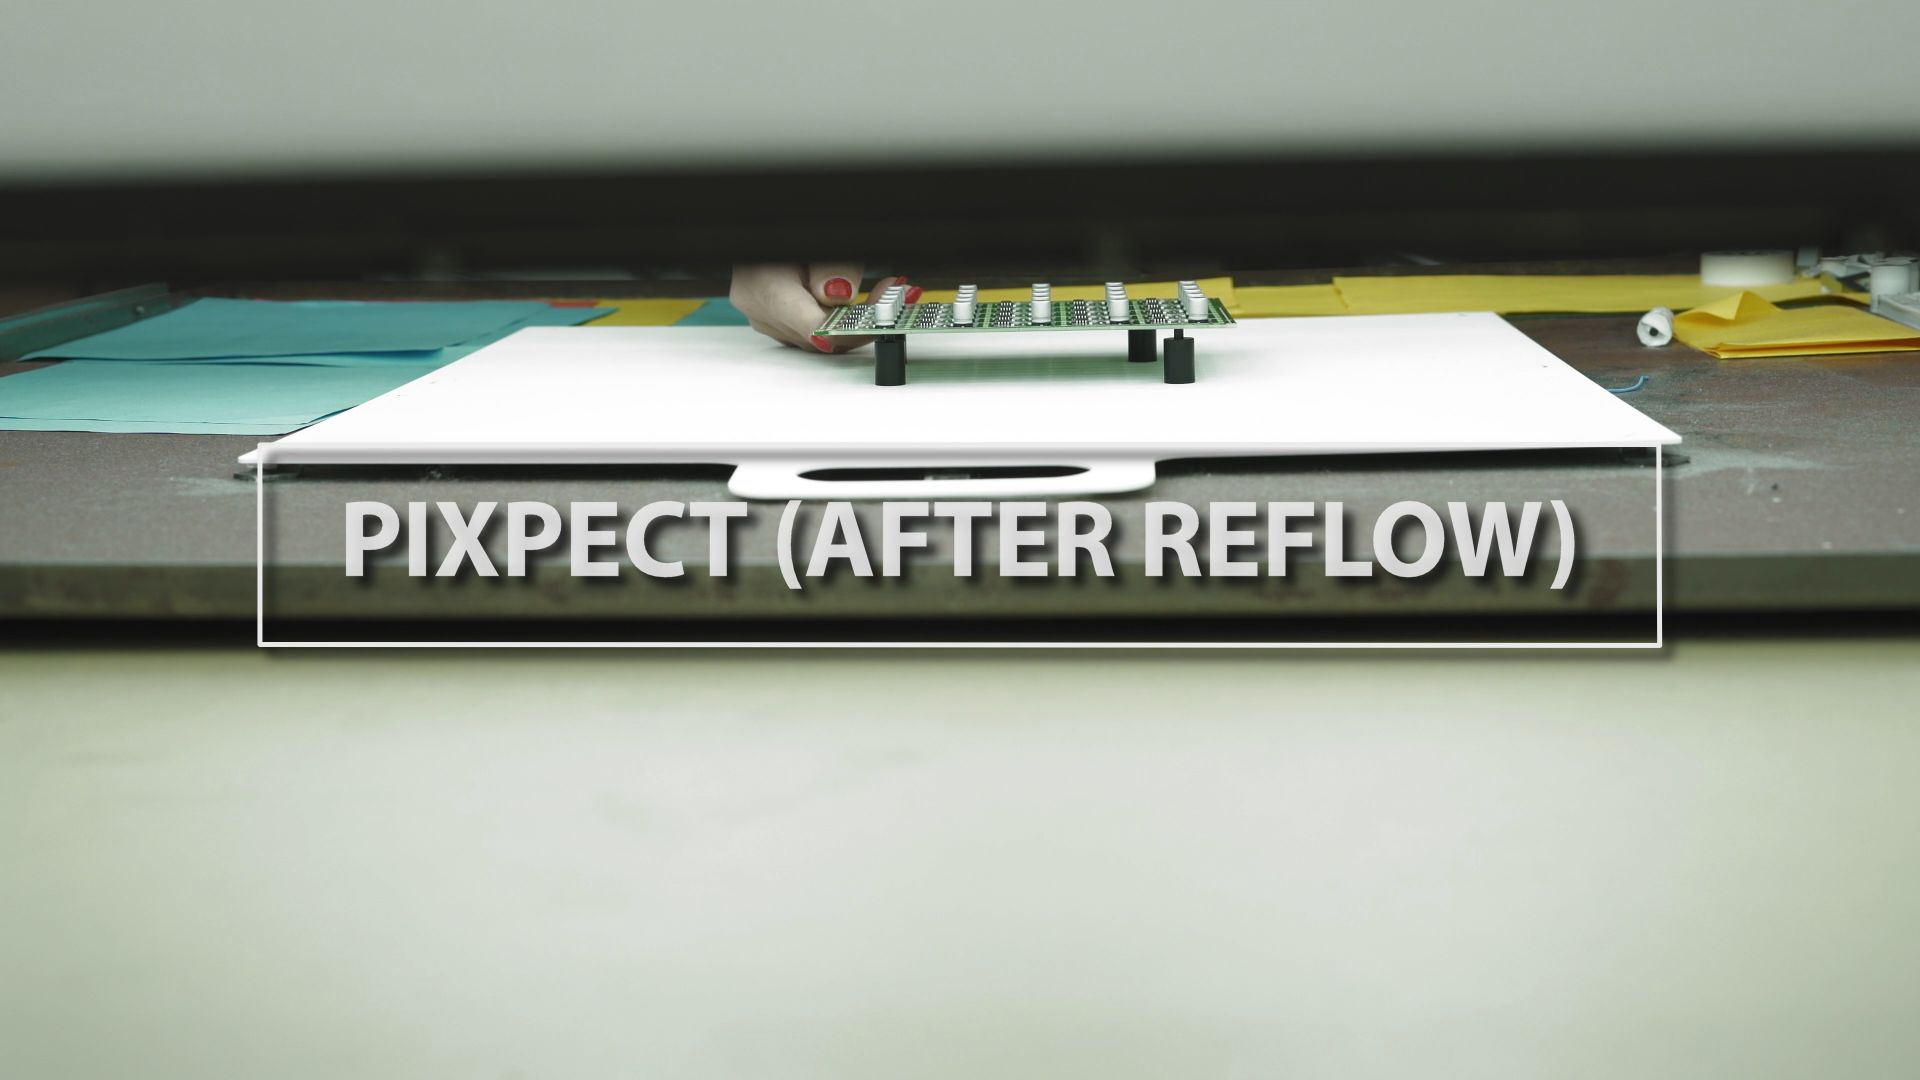 Technology Thursday: Pixpect after reflow